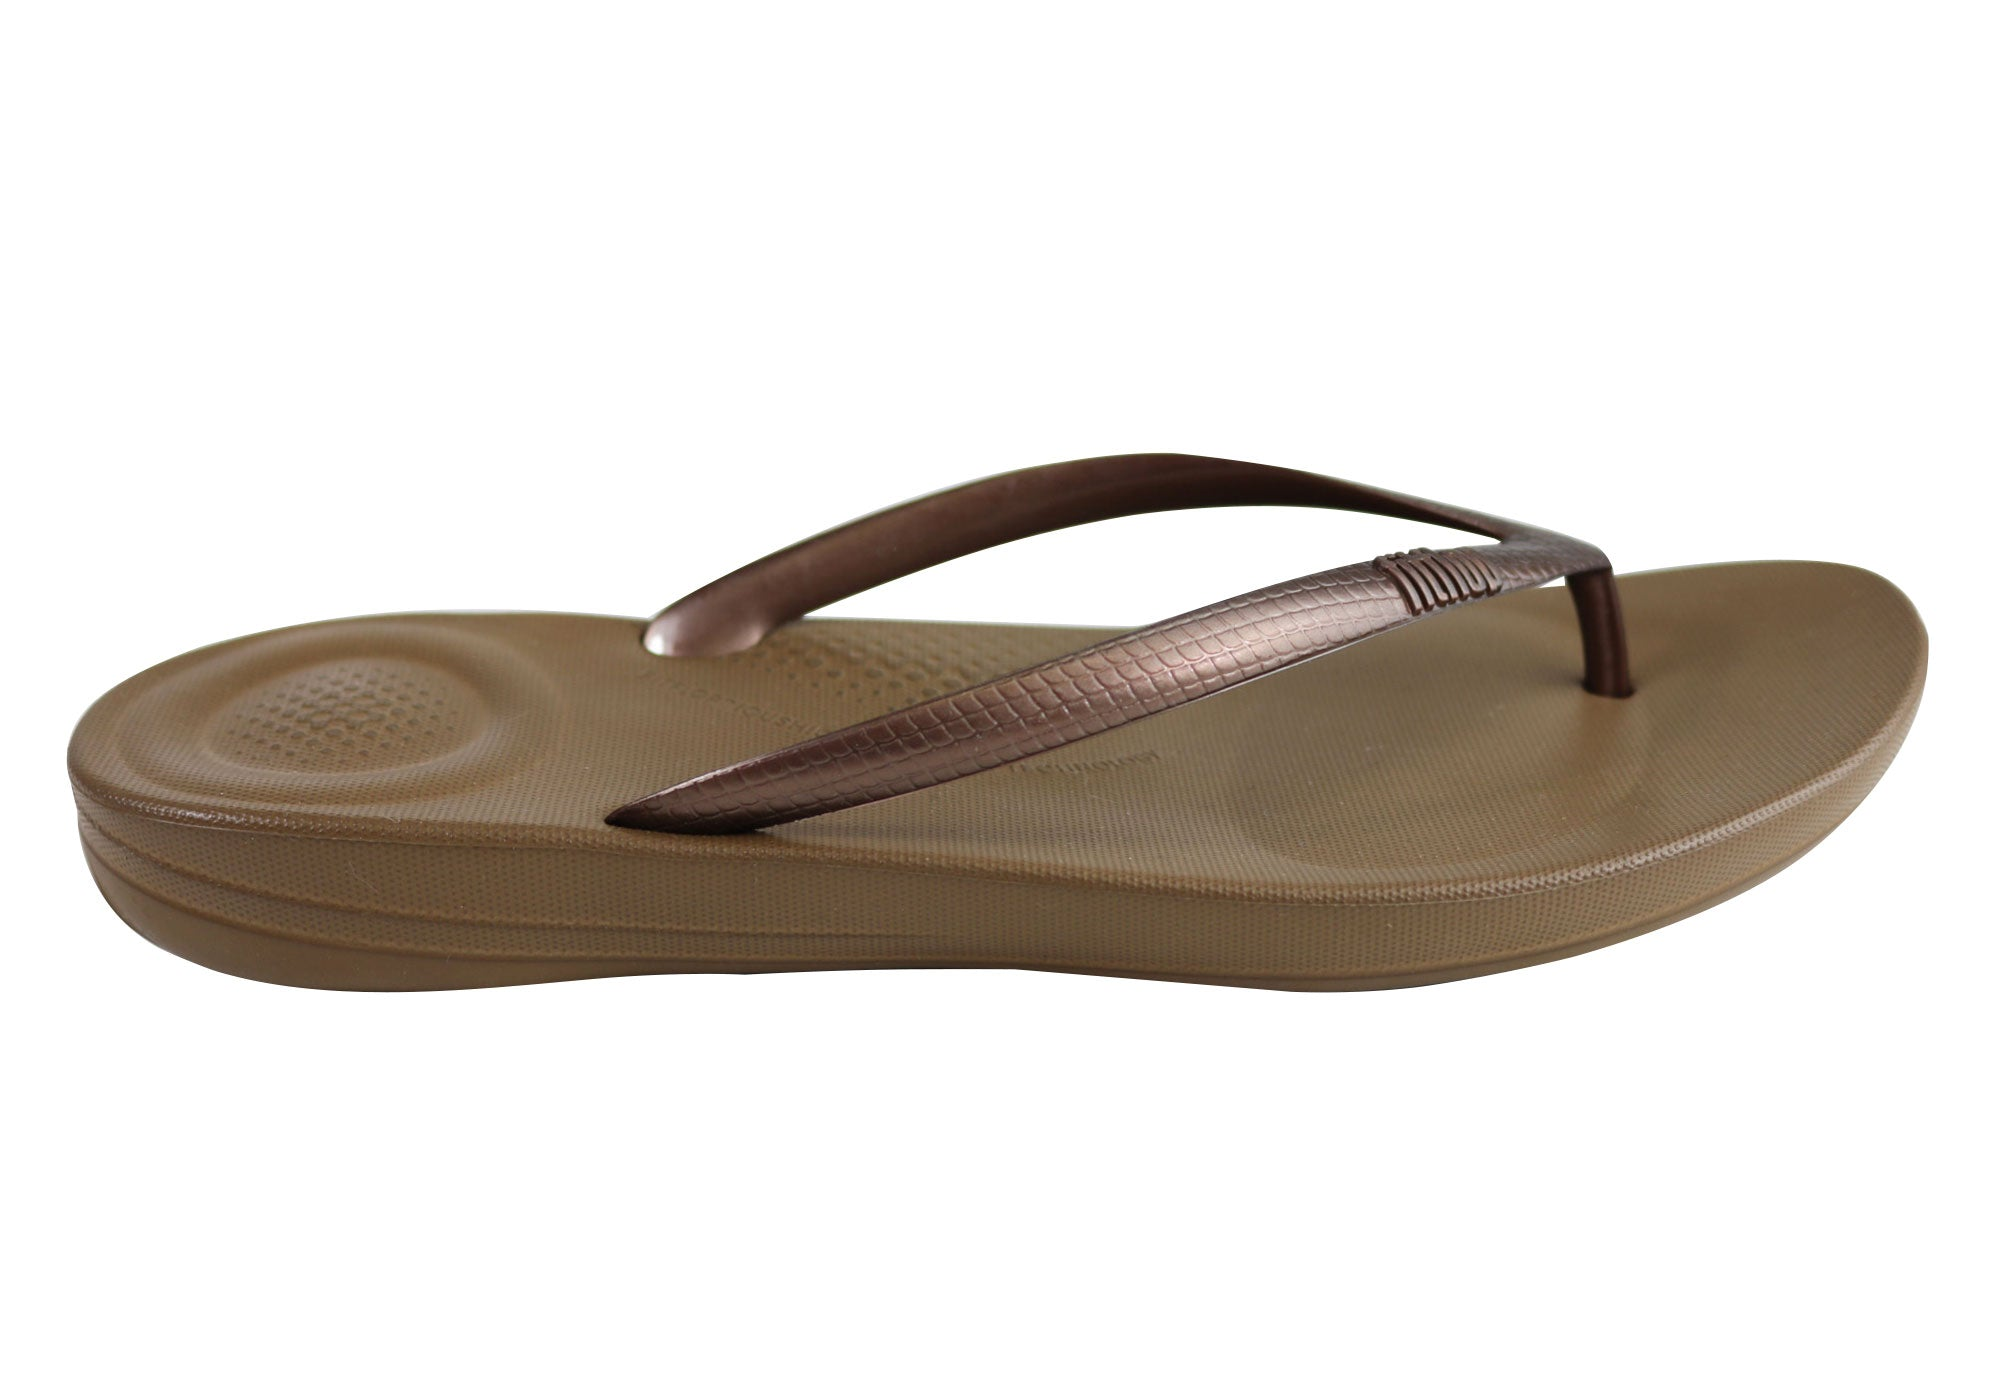 dfcb6bf41049 Home Fitflop Womens Comfort Iquishion Ergonomic Flip Flops Thongs Sandals.  Bronze · Black · Navy · Pewter ...